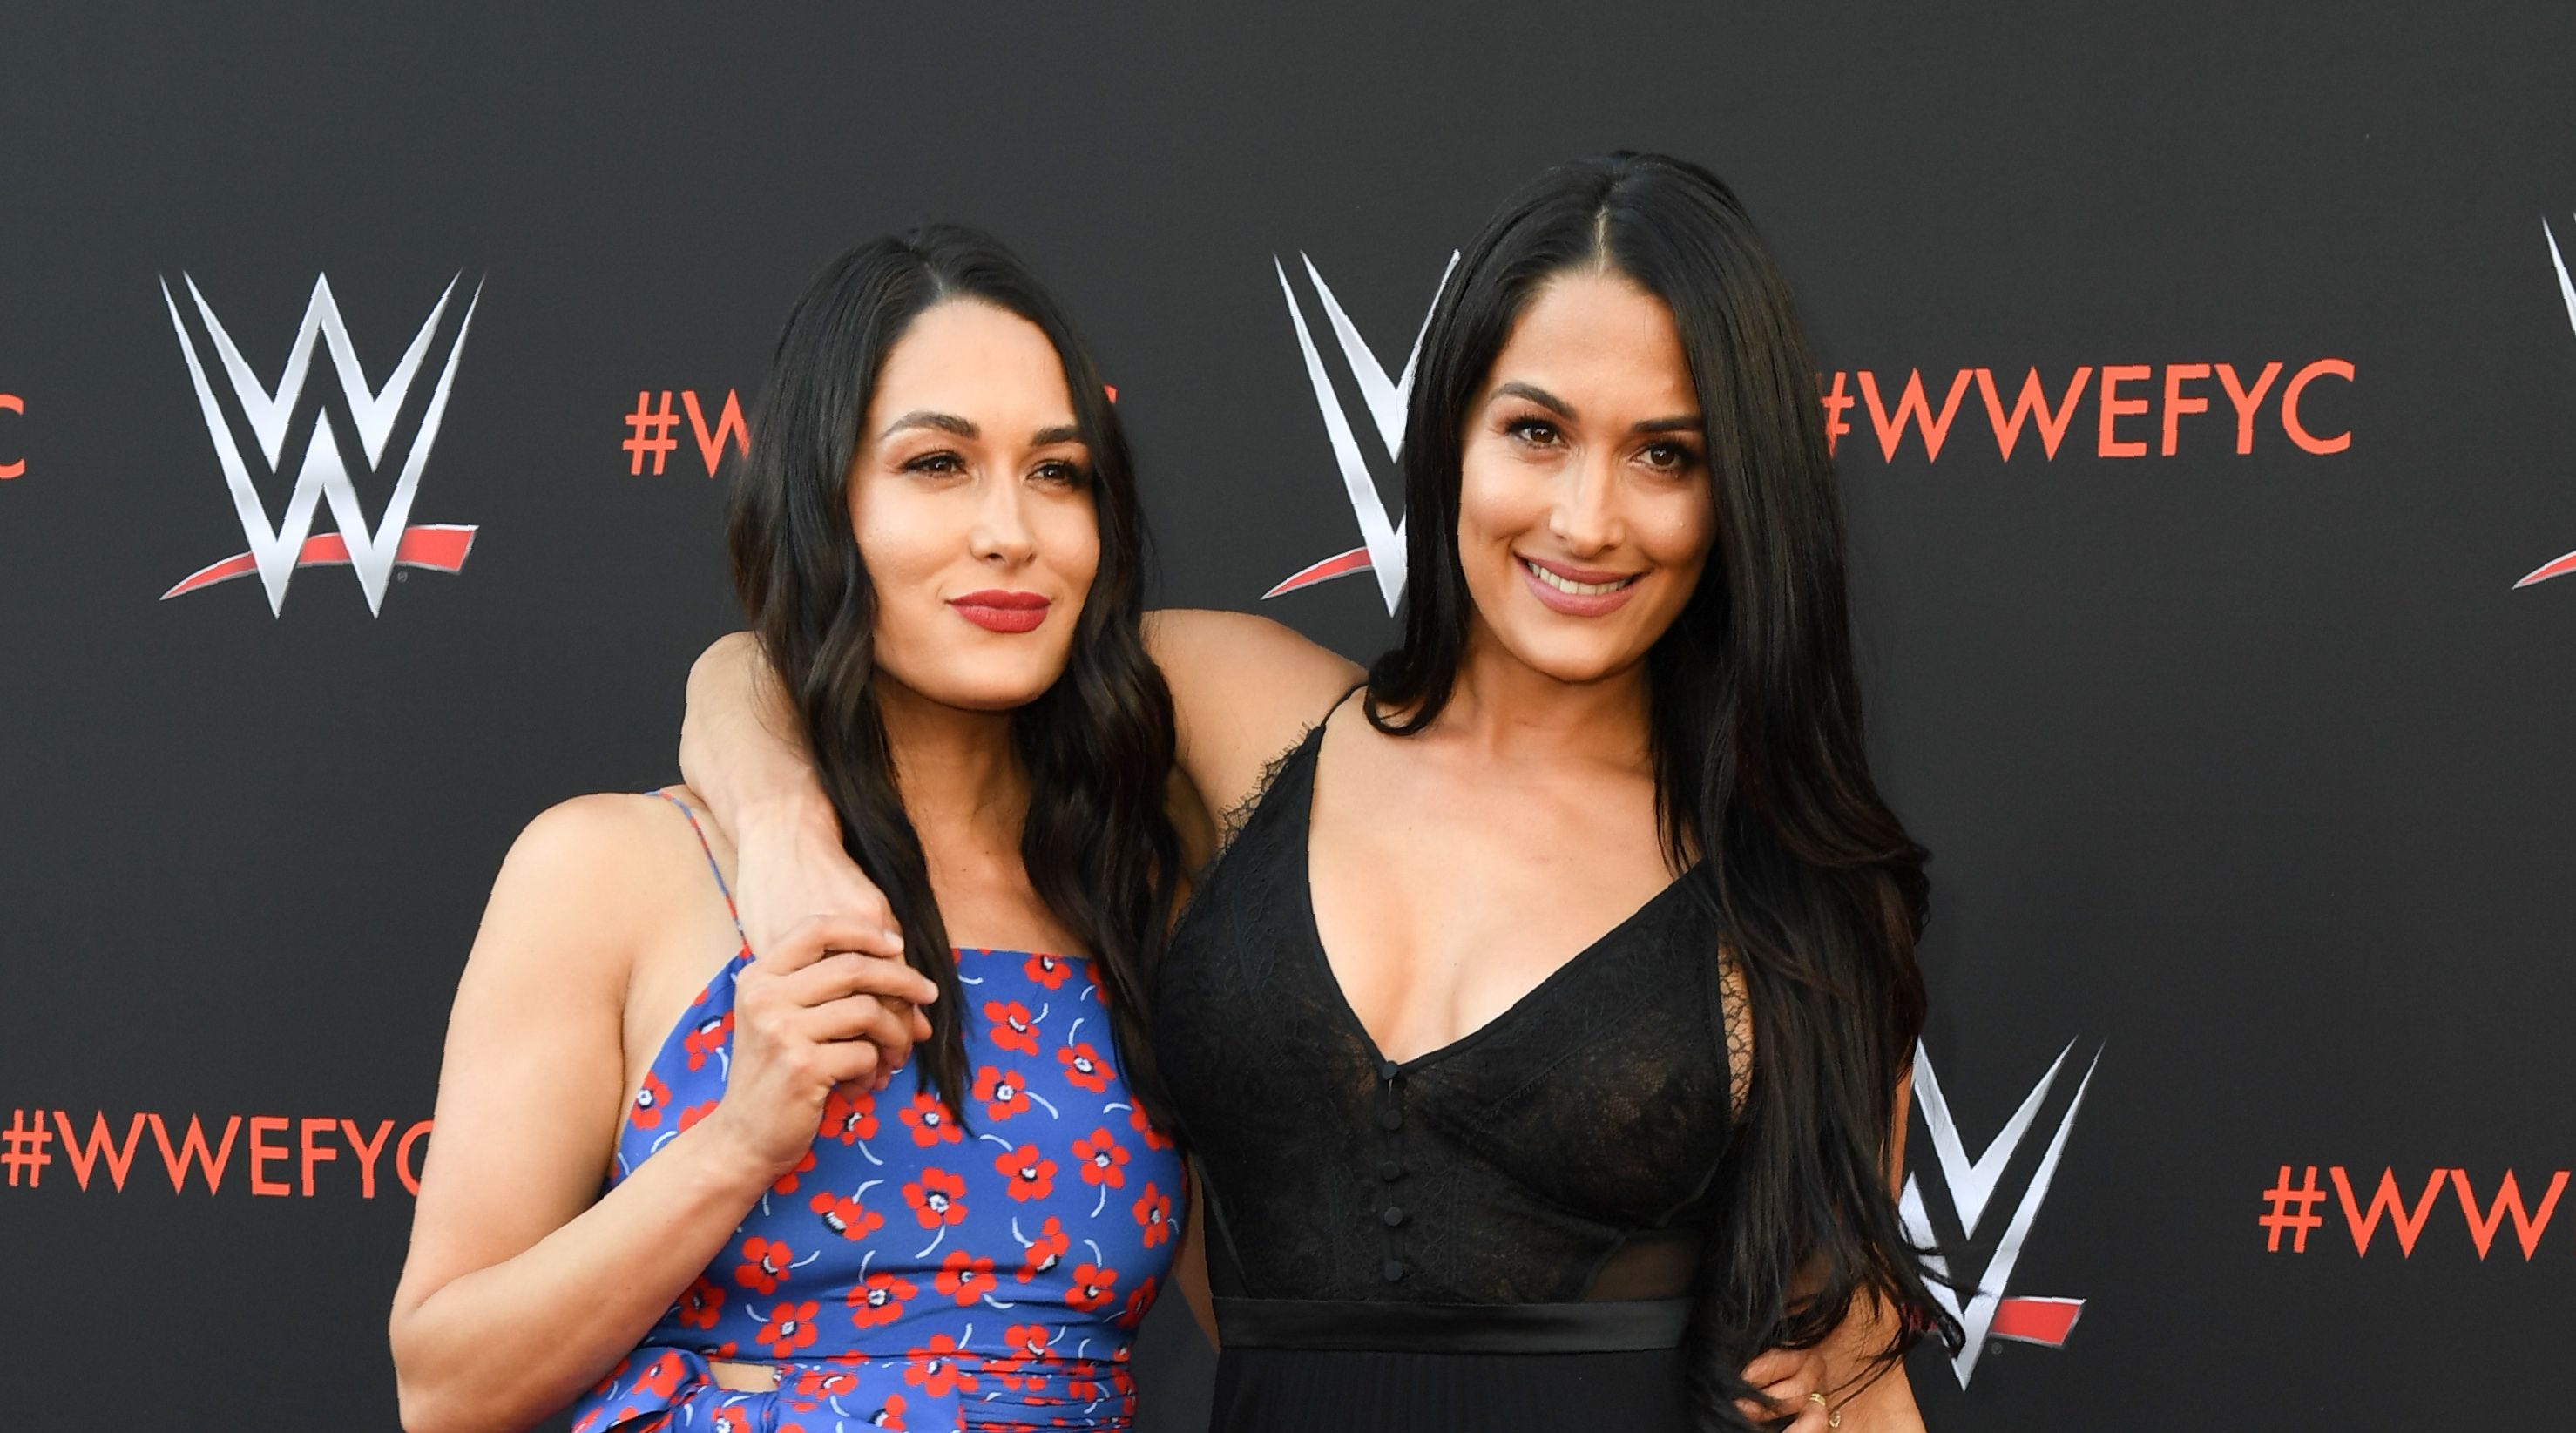 The Bella Twins will be hosting a meet and greet in Brooklyn.